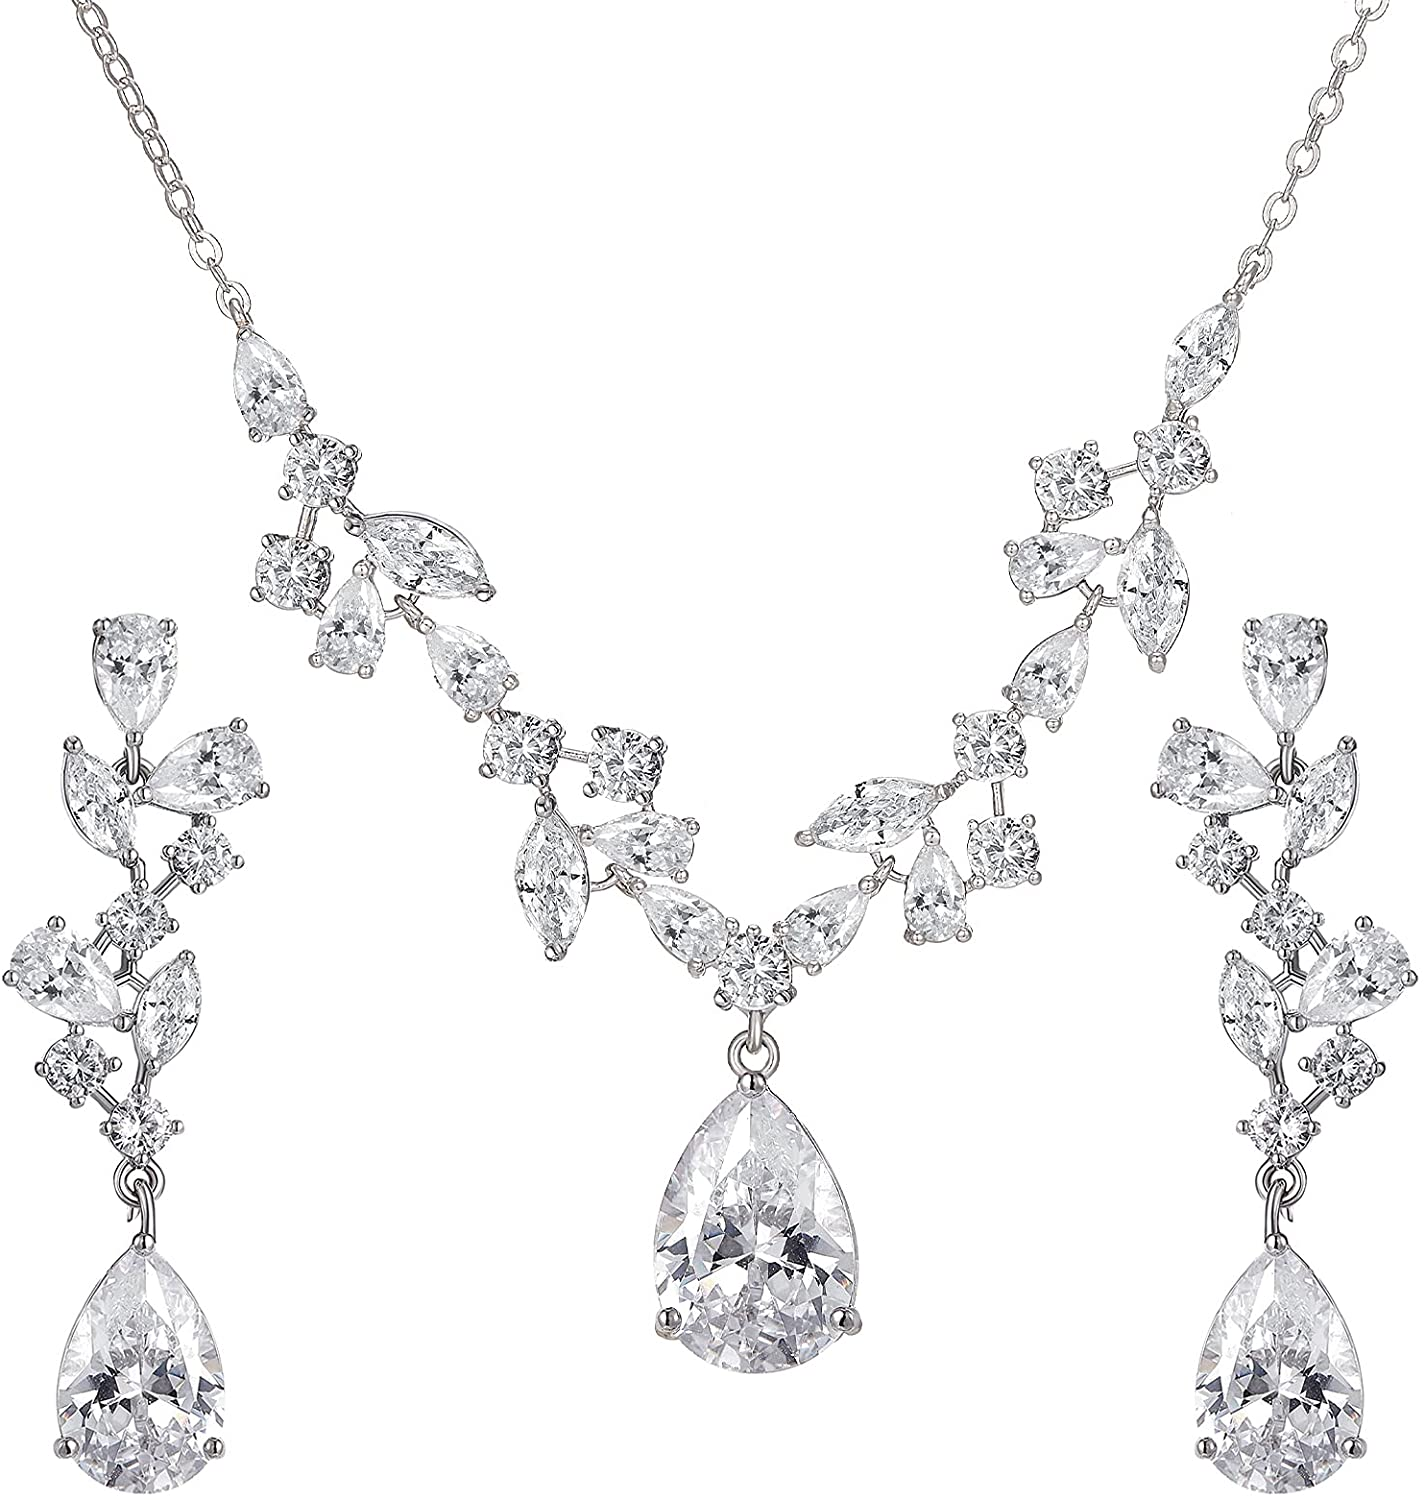 SWEETV Wedding Jewelry Sets for Brides Bridesmaid Women, CZ Marquise Teardrop Bridal Necklace Earrings Set Wedding Prom Costume Jewelry Gifts